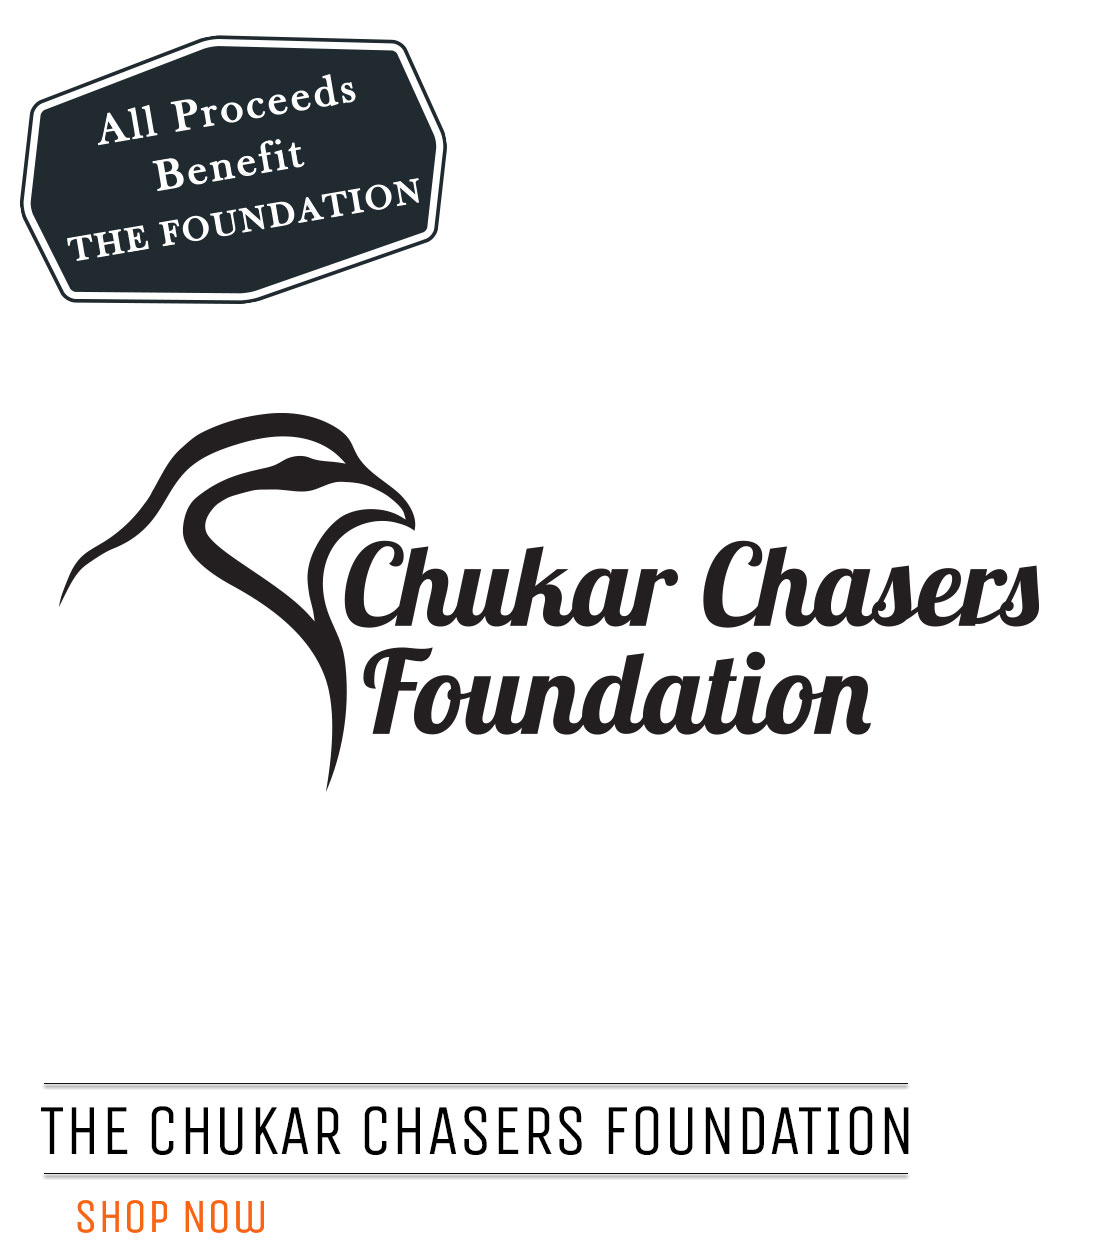 Chukar Chaser Foundation